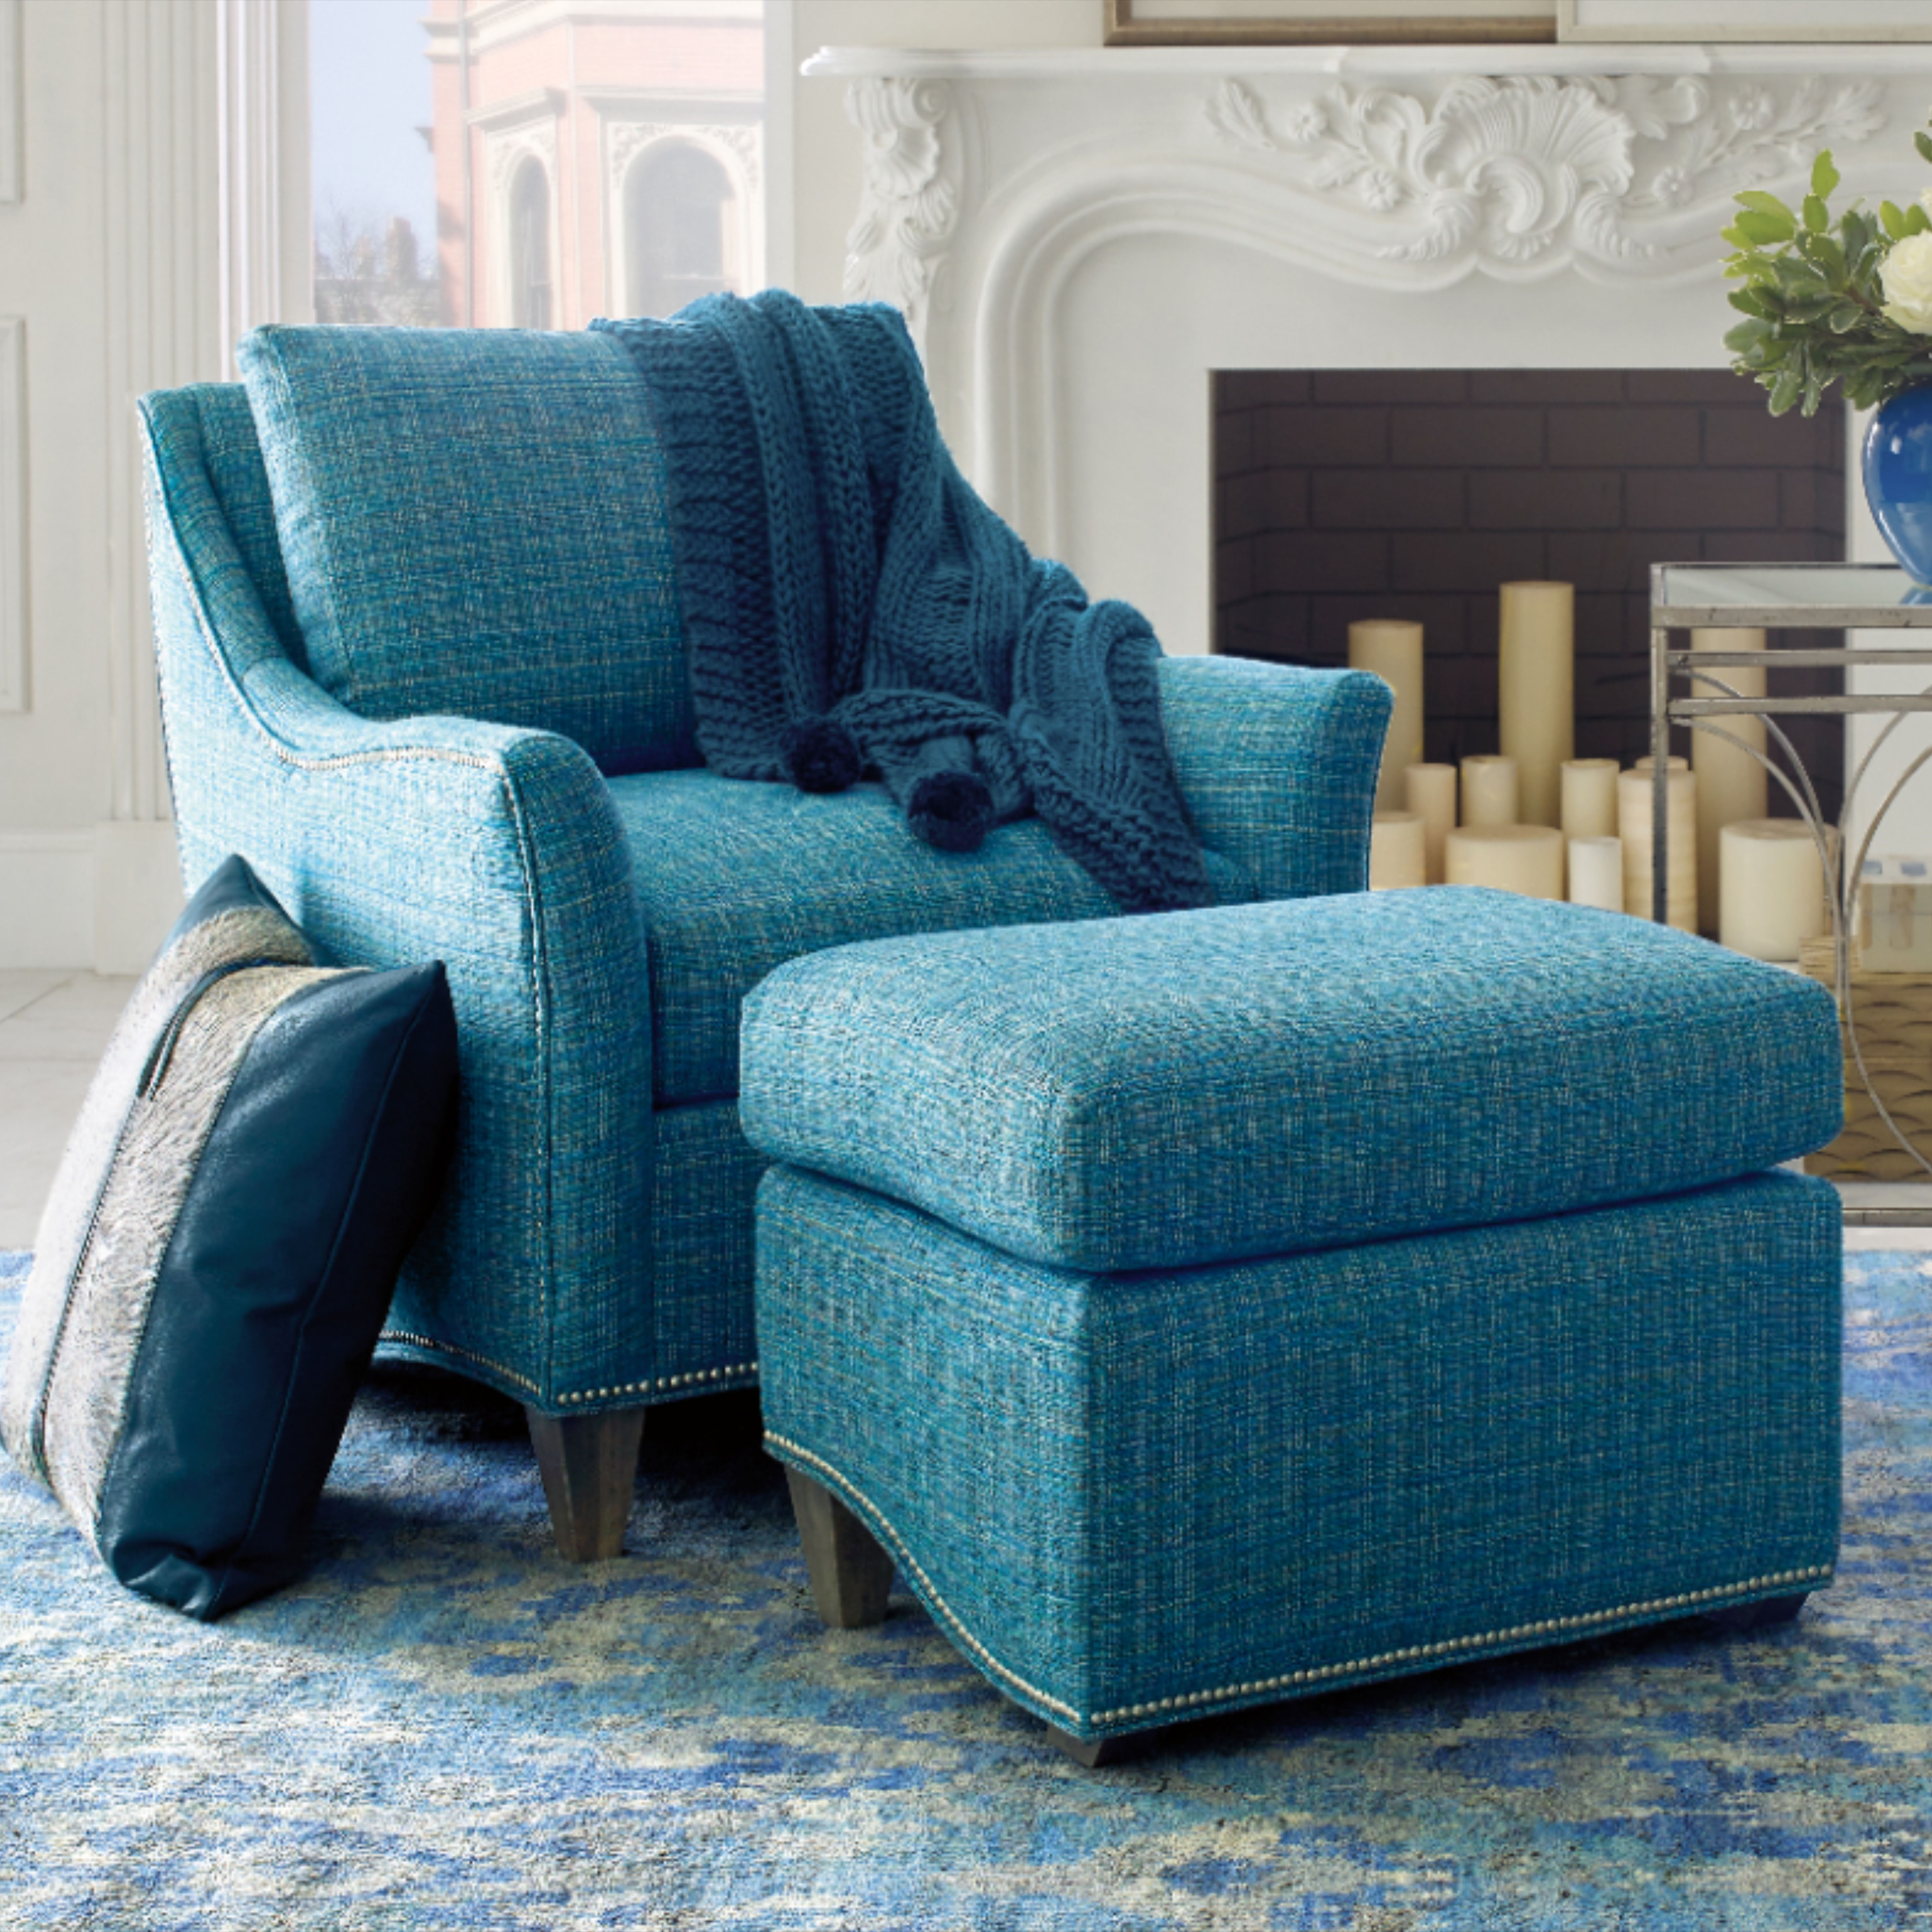 Company C Whistler Chair In 2020 Chair Turquoise Fabric Family Room #turquoise #chairs #for #living #room